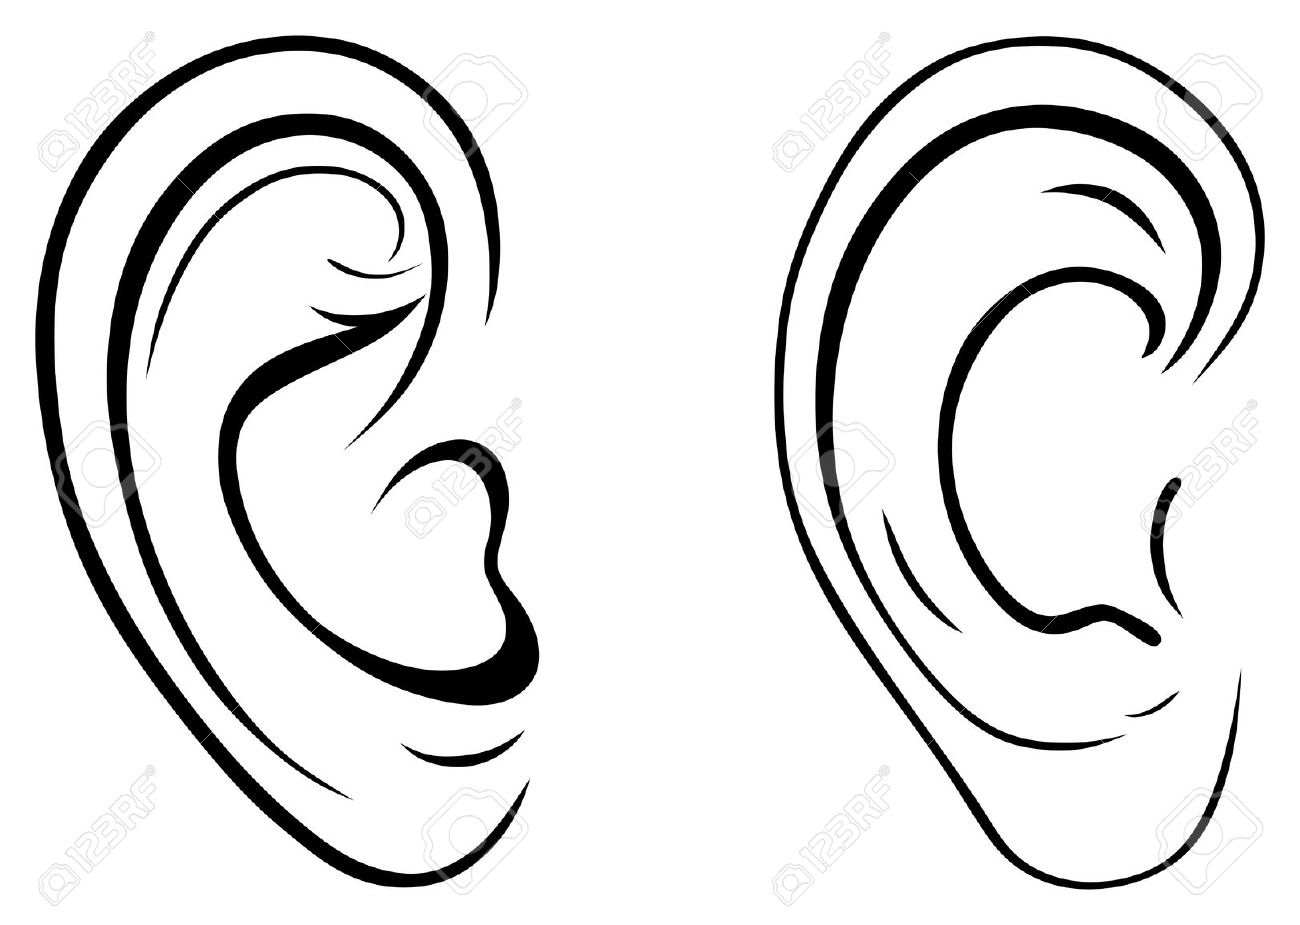 Fire coming out of ears clipart black and white png freeuse download Ears Clipart | Free download best Ears Clipart on ClipArtMag.com png freeuse download